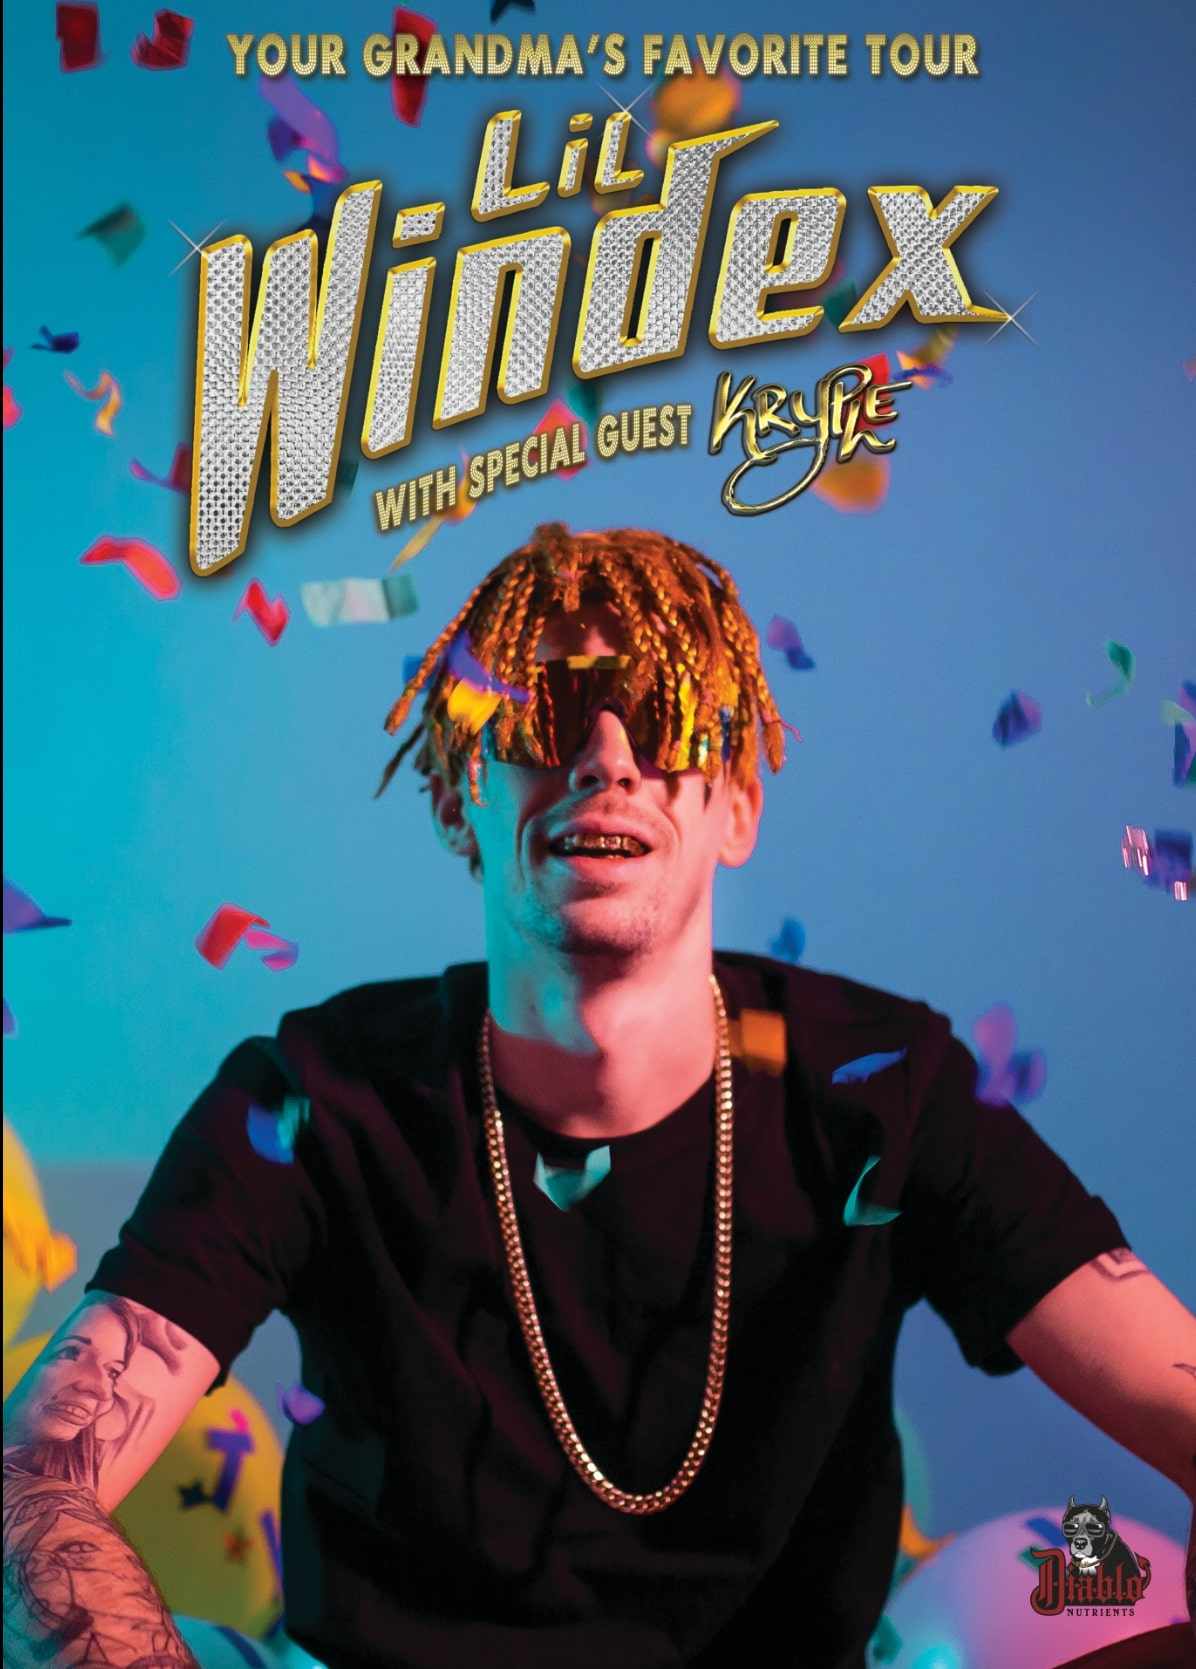 Your Grandma's Favourite Tour with Lil Windex ft. Kryple